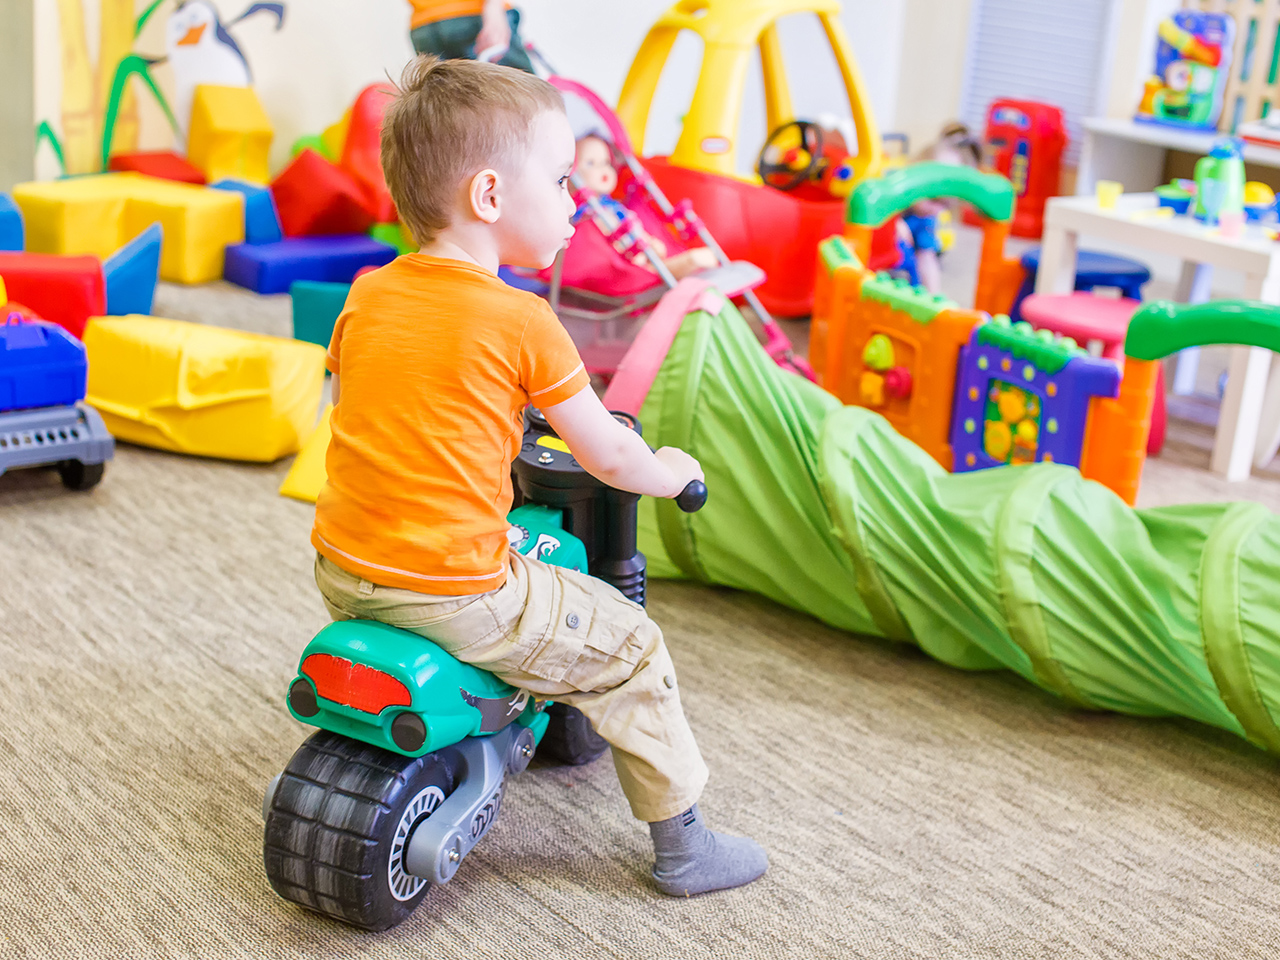 Little boy on motorbike faces playroom full of toys